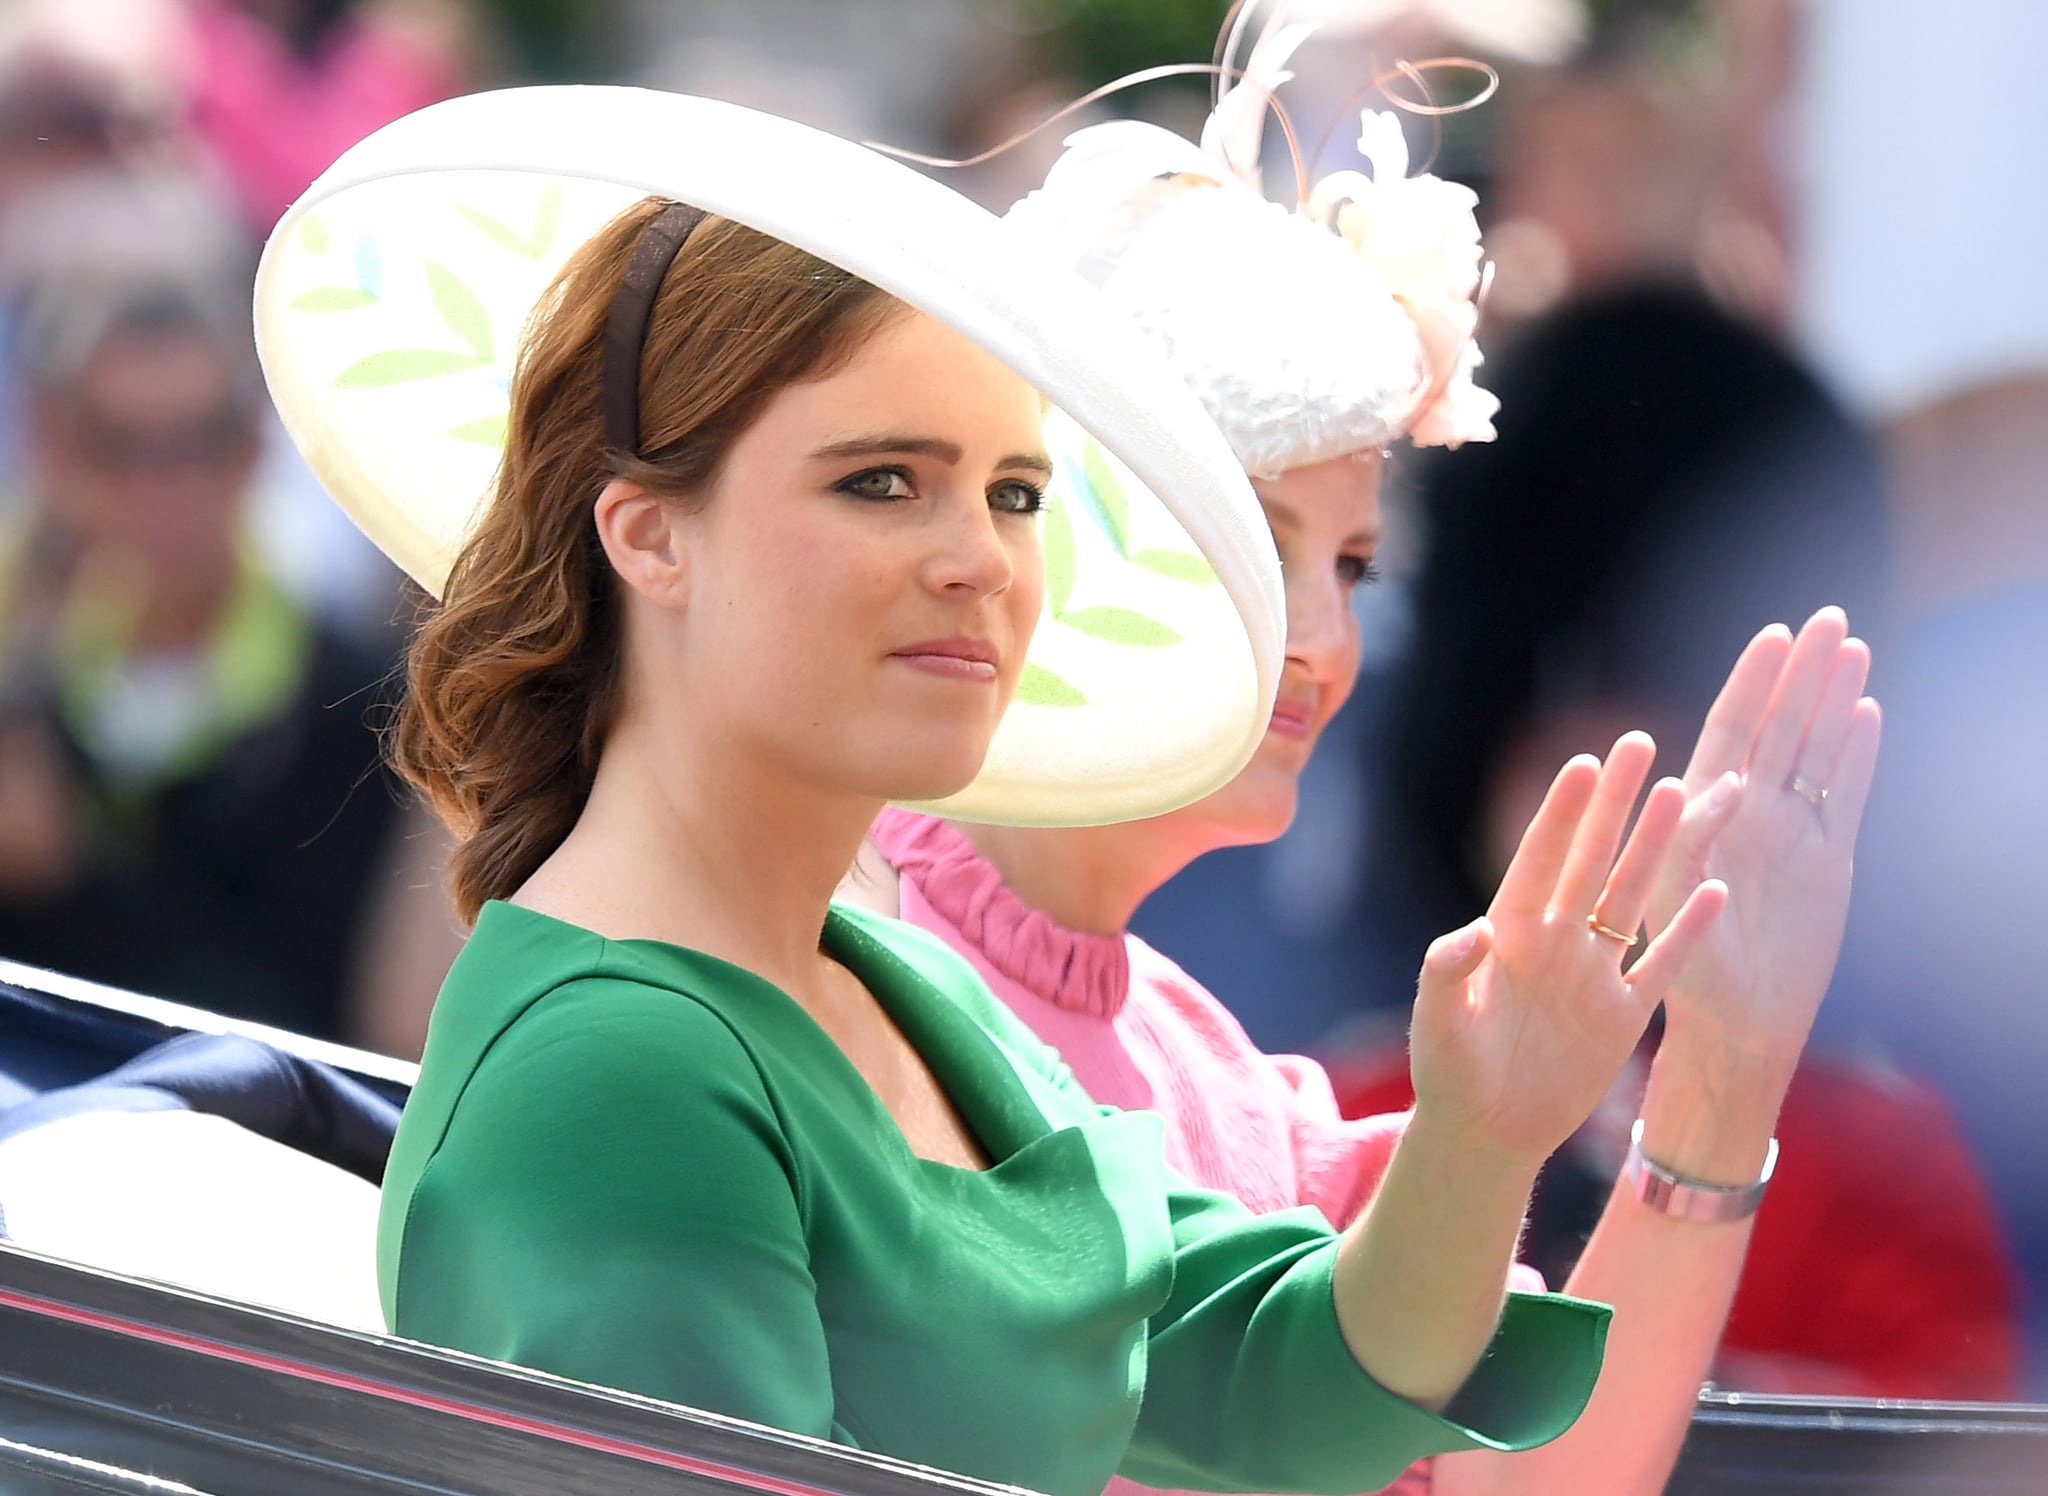 LONDON, ENGLAND - JUNE 09:  Princess Eugenie of York during Trooping The Colour 2018 at The Mall on June 9, 2018 in London, England. The annual ceremony involving over 1400 guardsmen and cavalry, is believed to have first been performed during the reign of King Charles II. The parade marks the official birthday of the Sovereign, even though the Queen's actual birthday is on April 21st.  (Photo by Karwai Tang/WireImage)